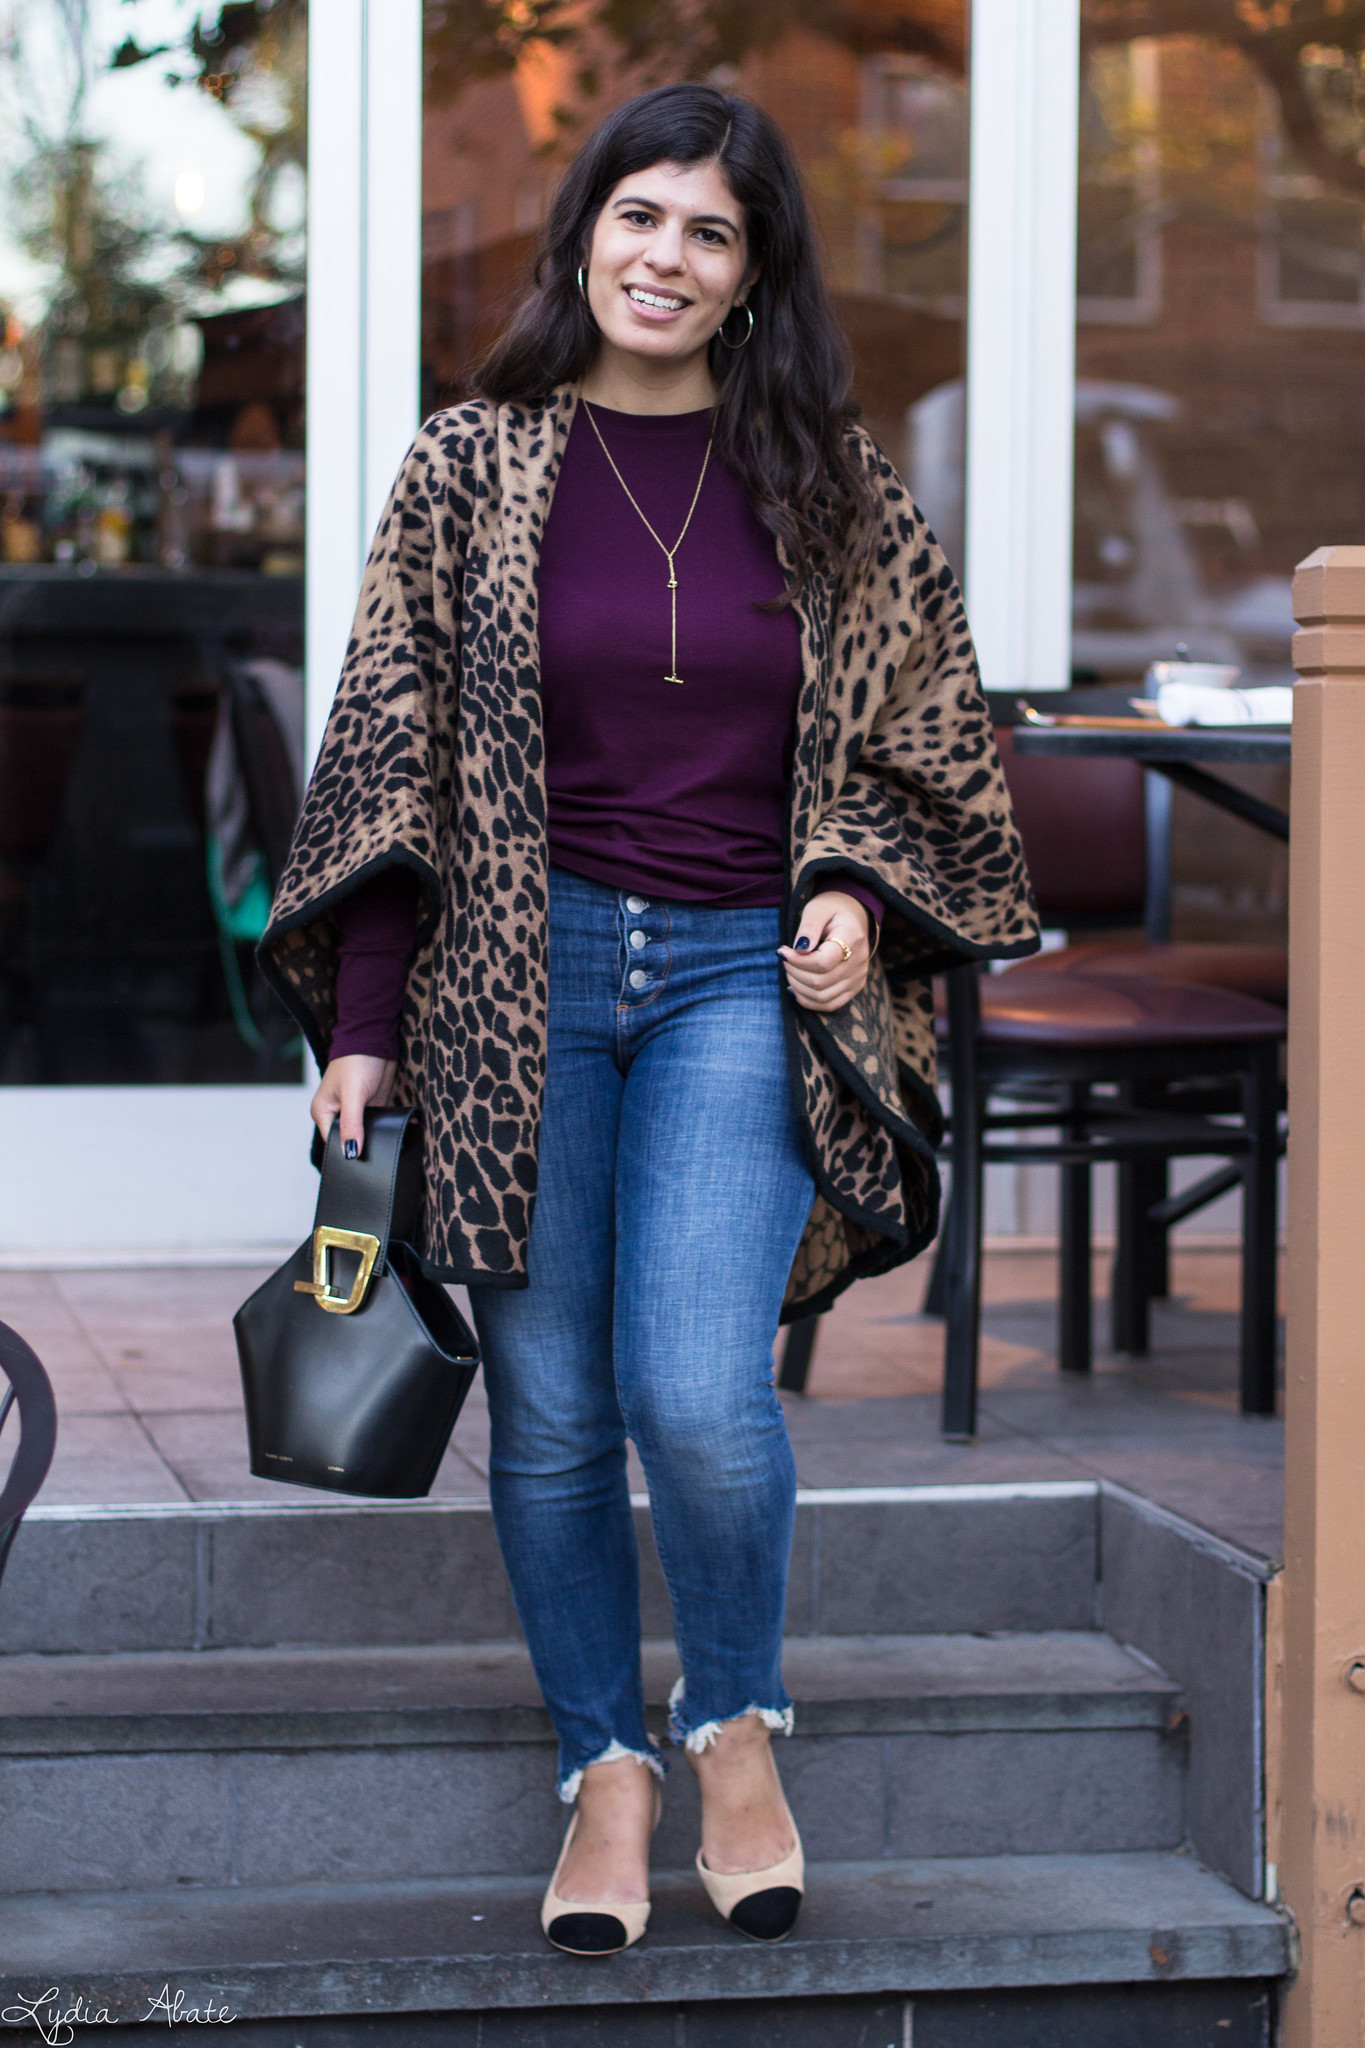 Leopard wrap, burgundy top, button fly jeans, toe cap heels-2.jpg